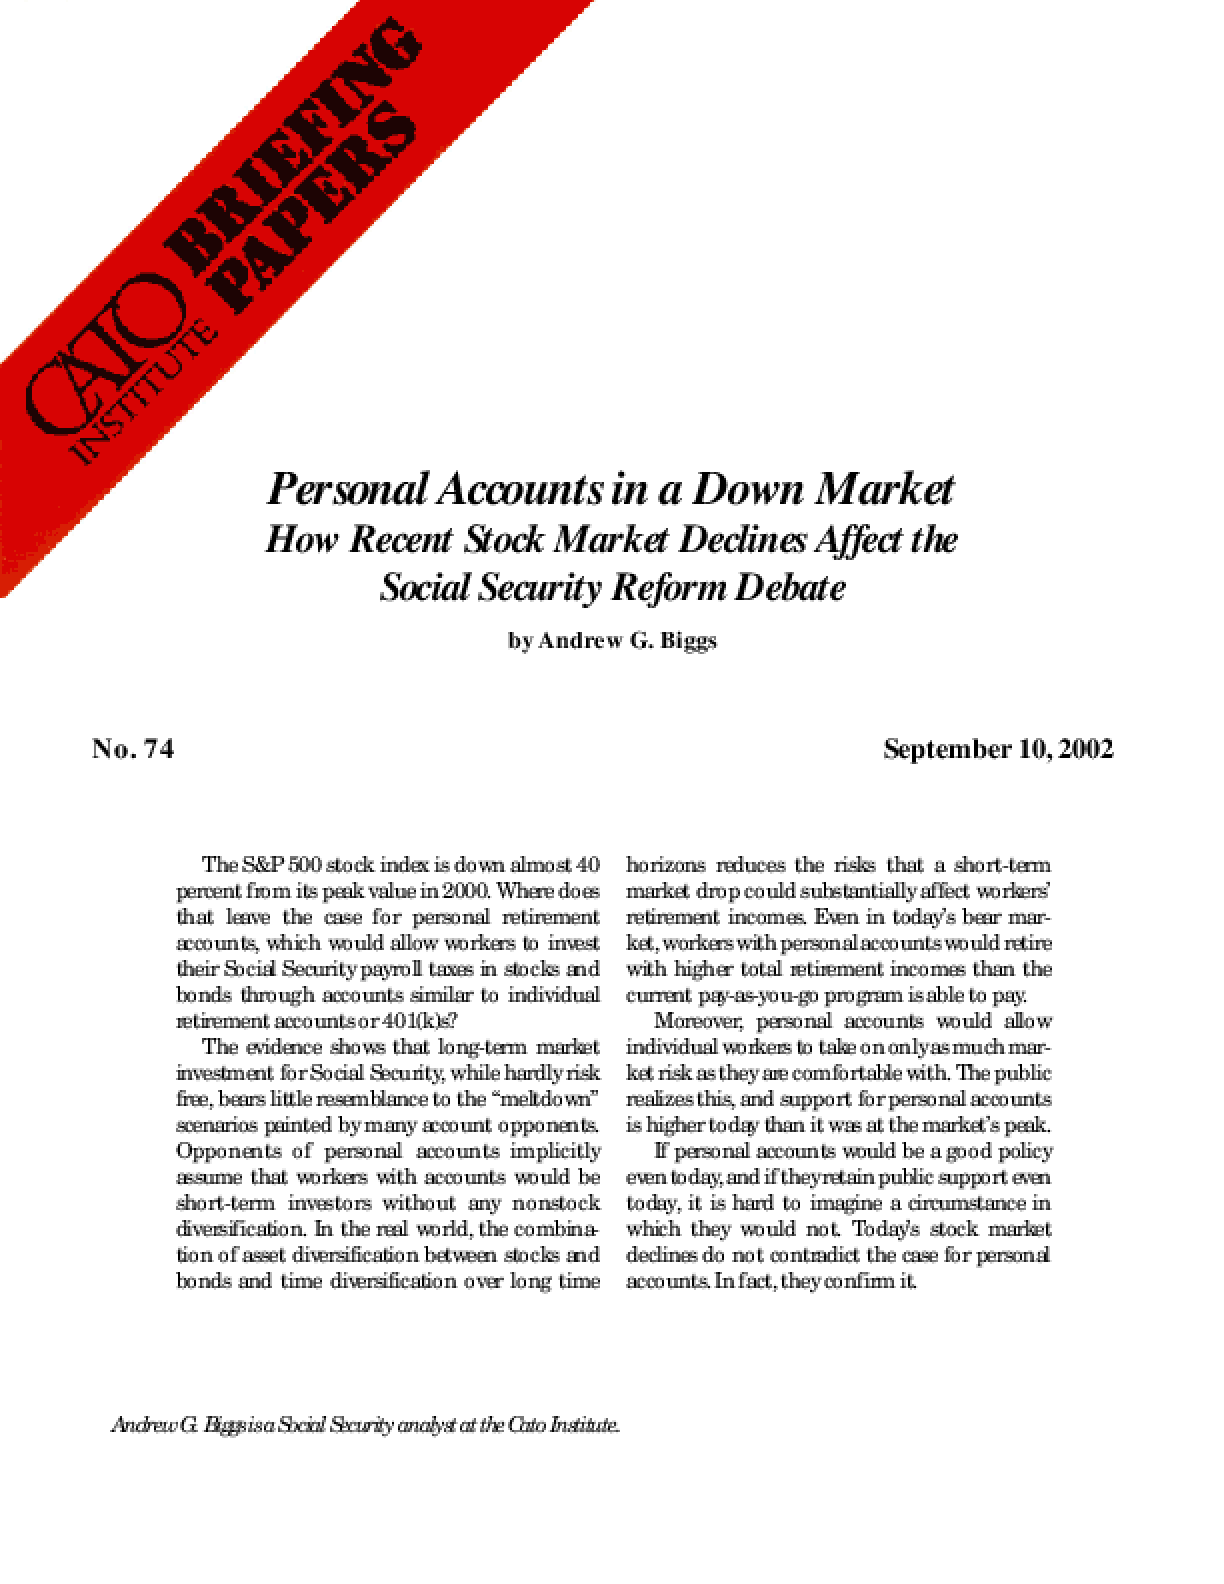 Personal Accounts in a Down Market: How Recent Stock Market Declines Affect the Social Security Reform Debate